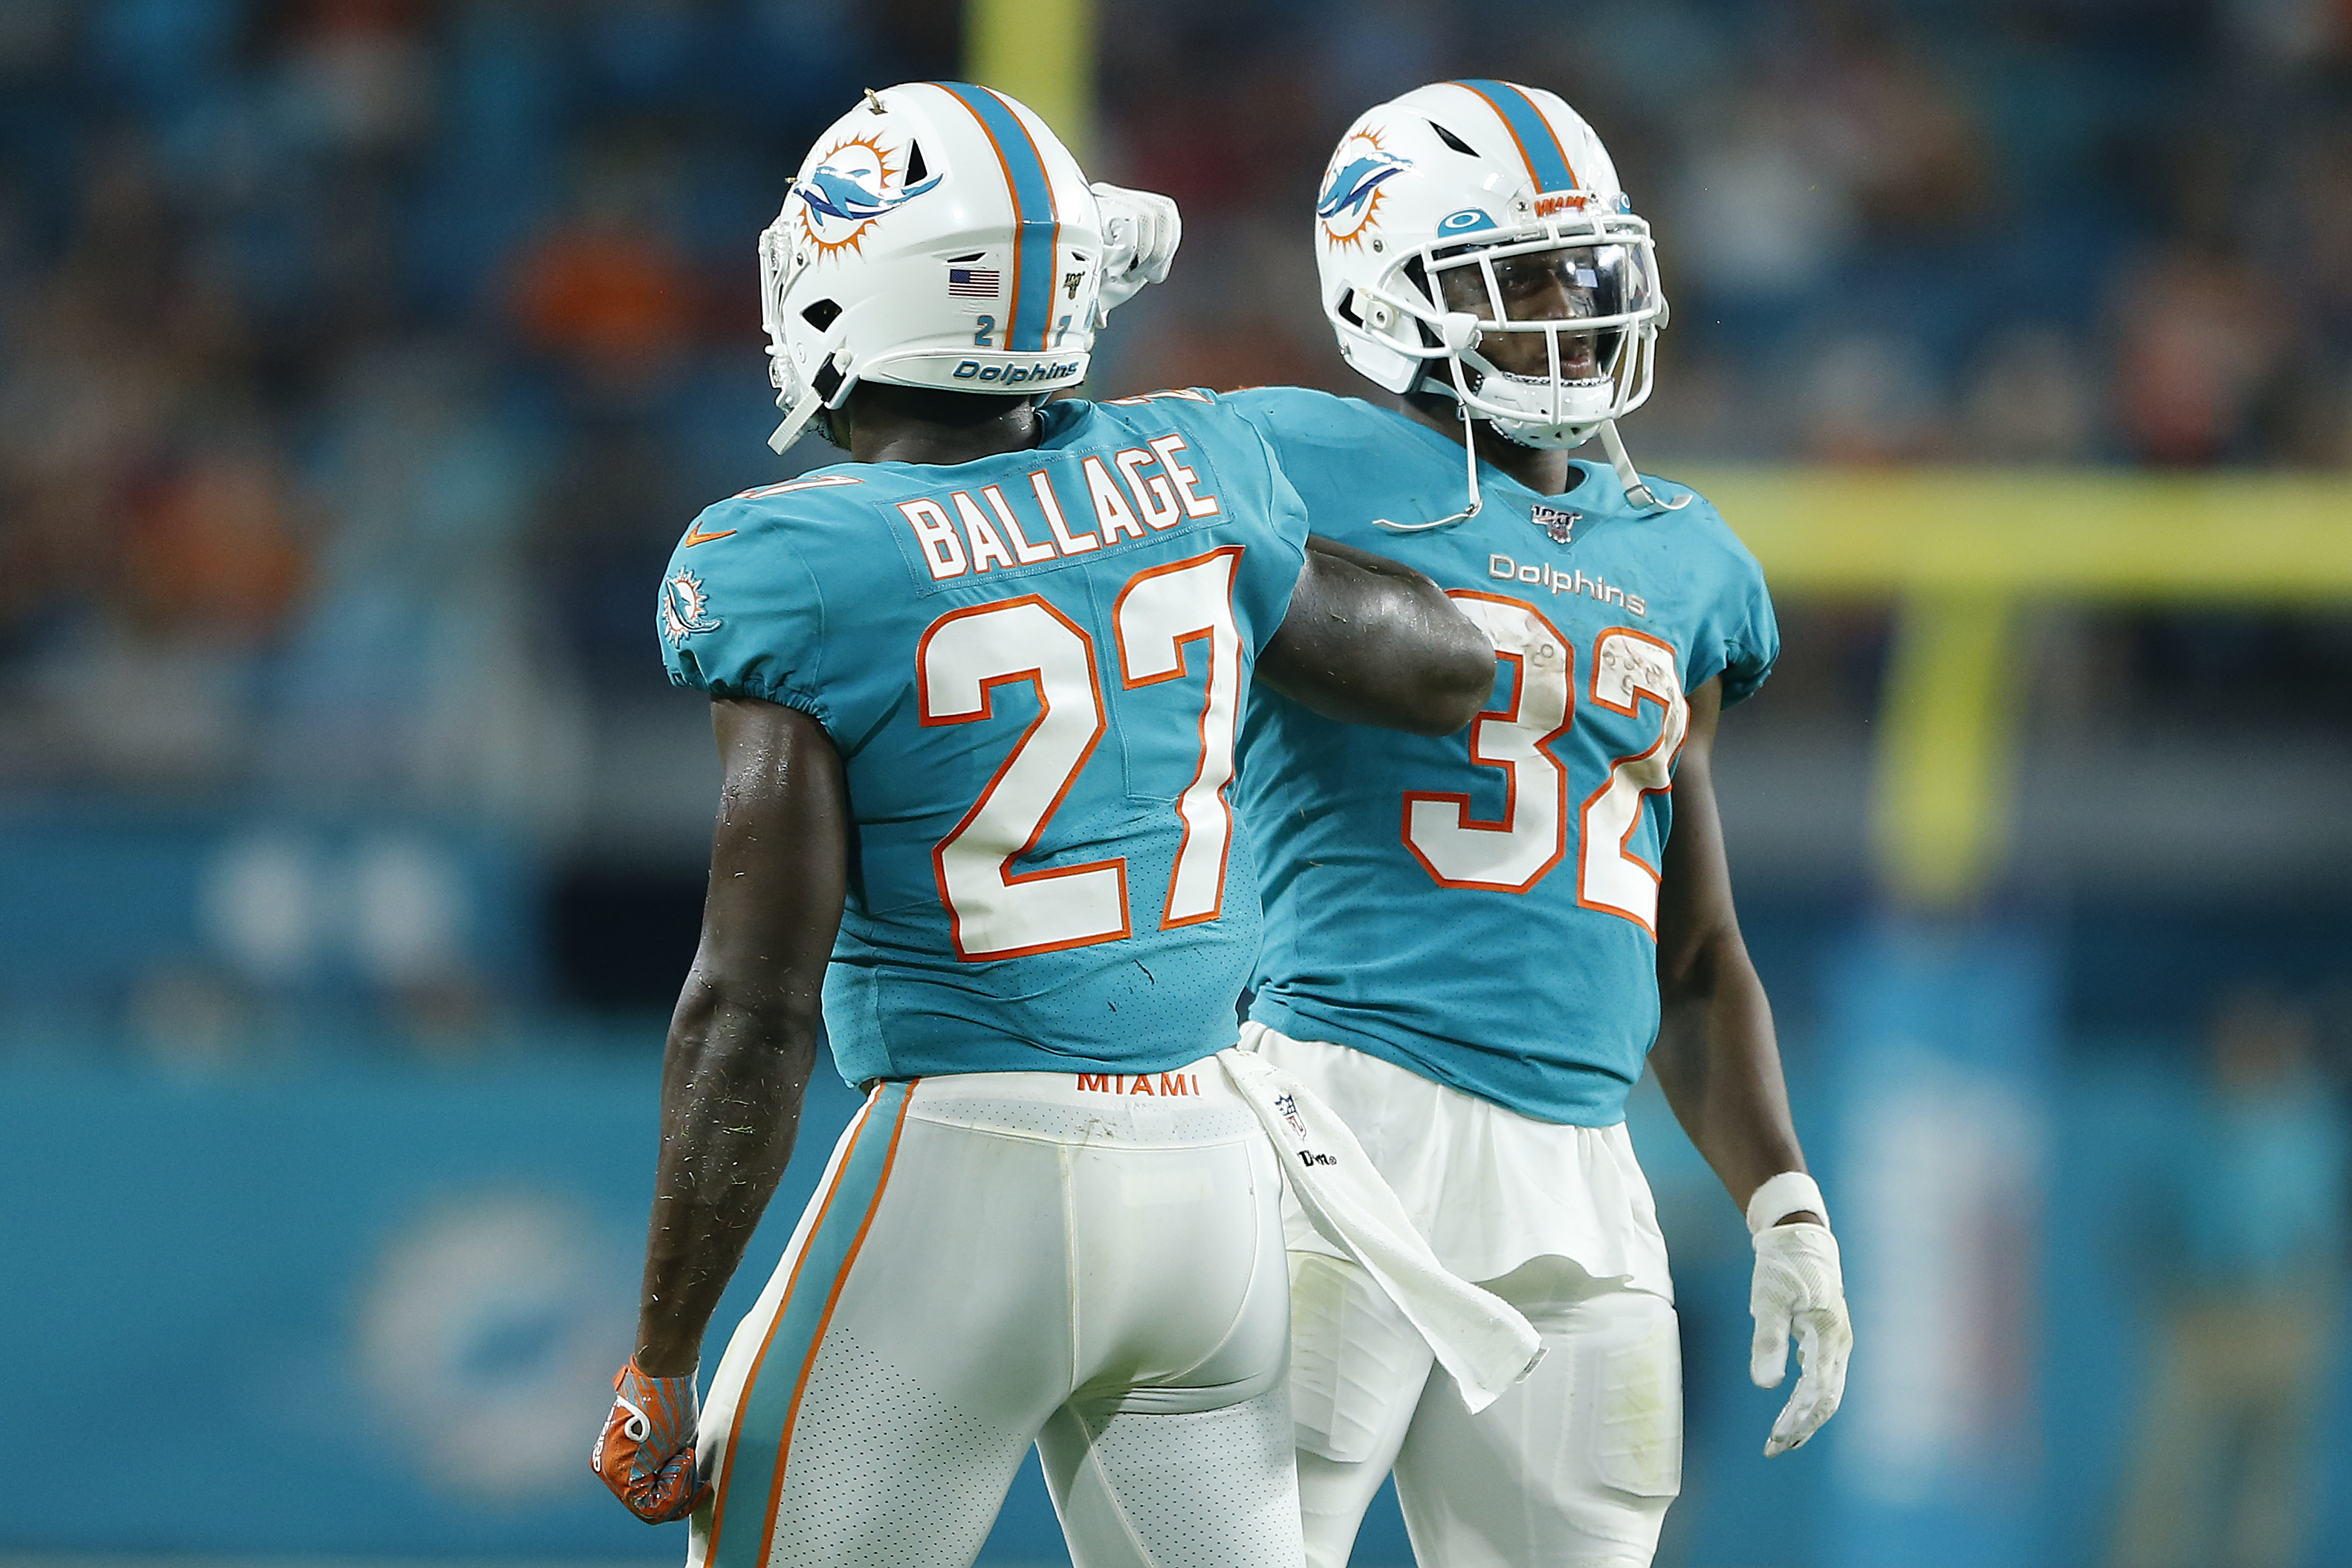 Kalen Ballage of the Miami Dolphins celebrates with Kenyan Drake after scoring a touchdown against the Atlanta Falcons during the first quarter of the preseason game at Hard Rock Stadium on August 08, 2019 in Miami, Florida.